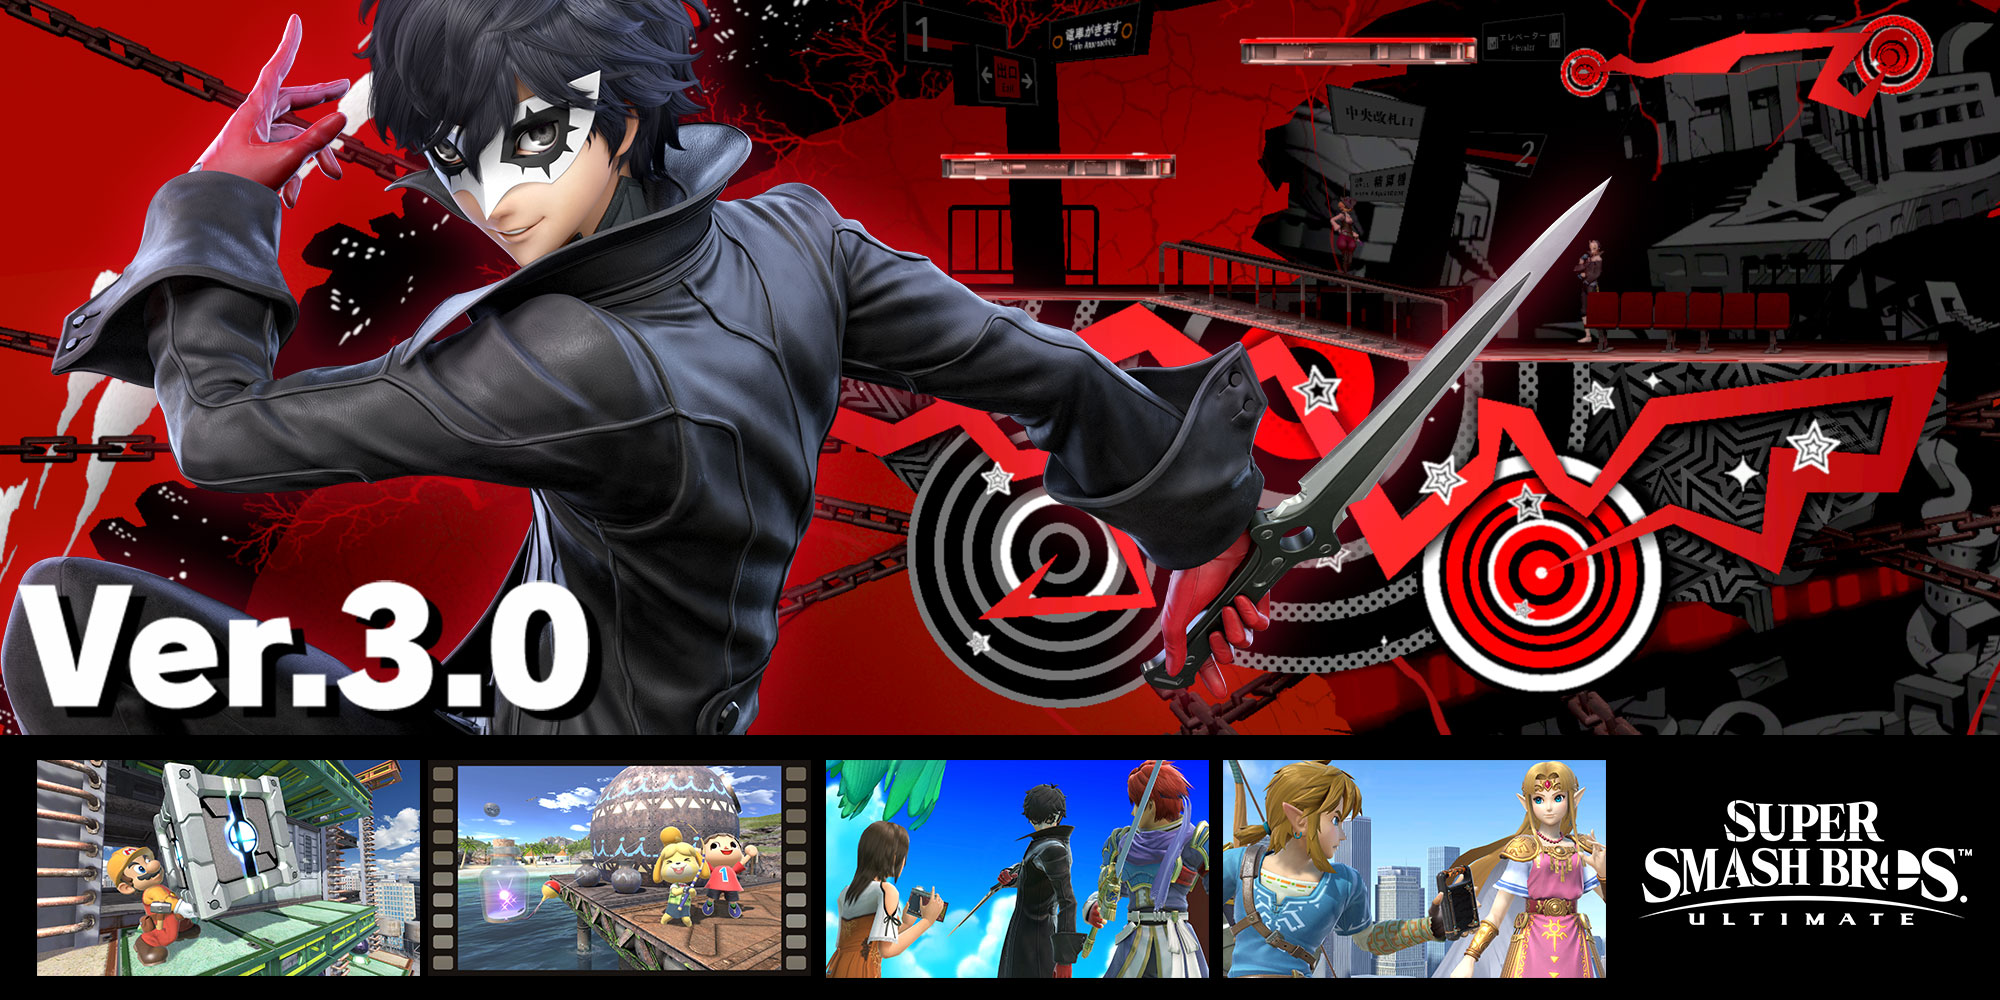 Masahiro Sakurai vertelt over Joker uit Persona 5 in Super Smash Bros. Ultimate